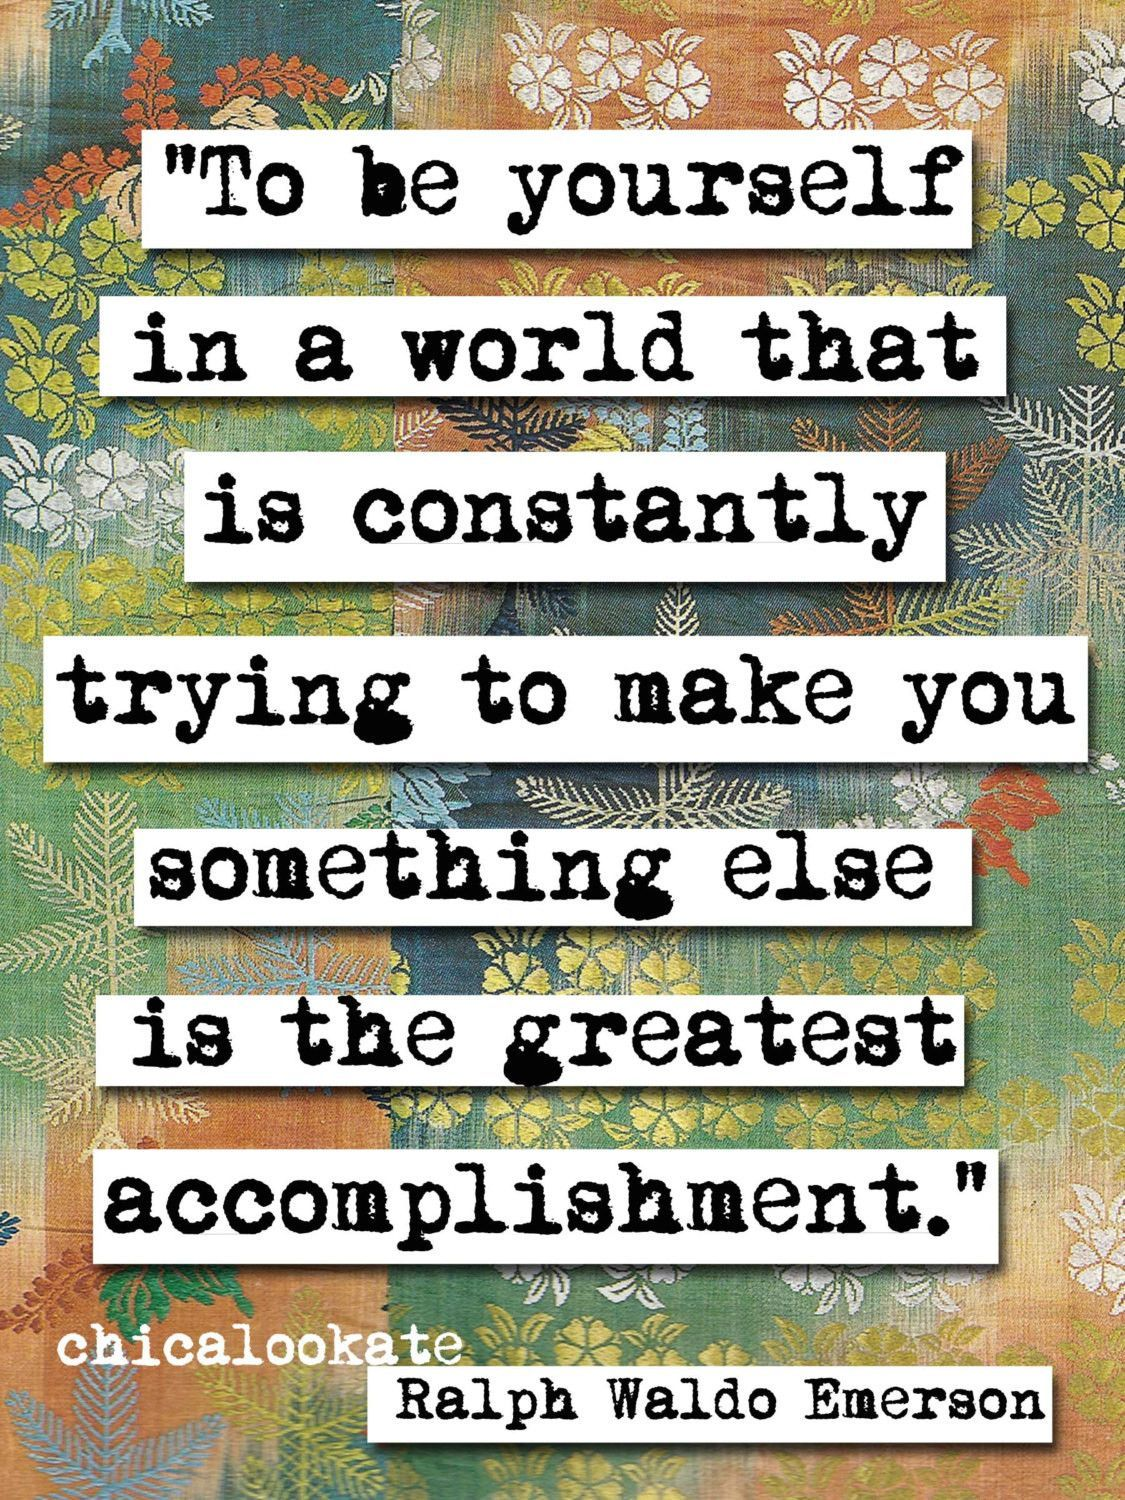 """""""To be yourself in a world taht is constantly trying to make you something else is the greatest accomplishment."""" Image size 6 (w) by 8 (h) inches Paper size 8 (w) by 10(h) inches - Can be used in a st"""